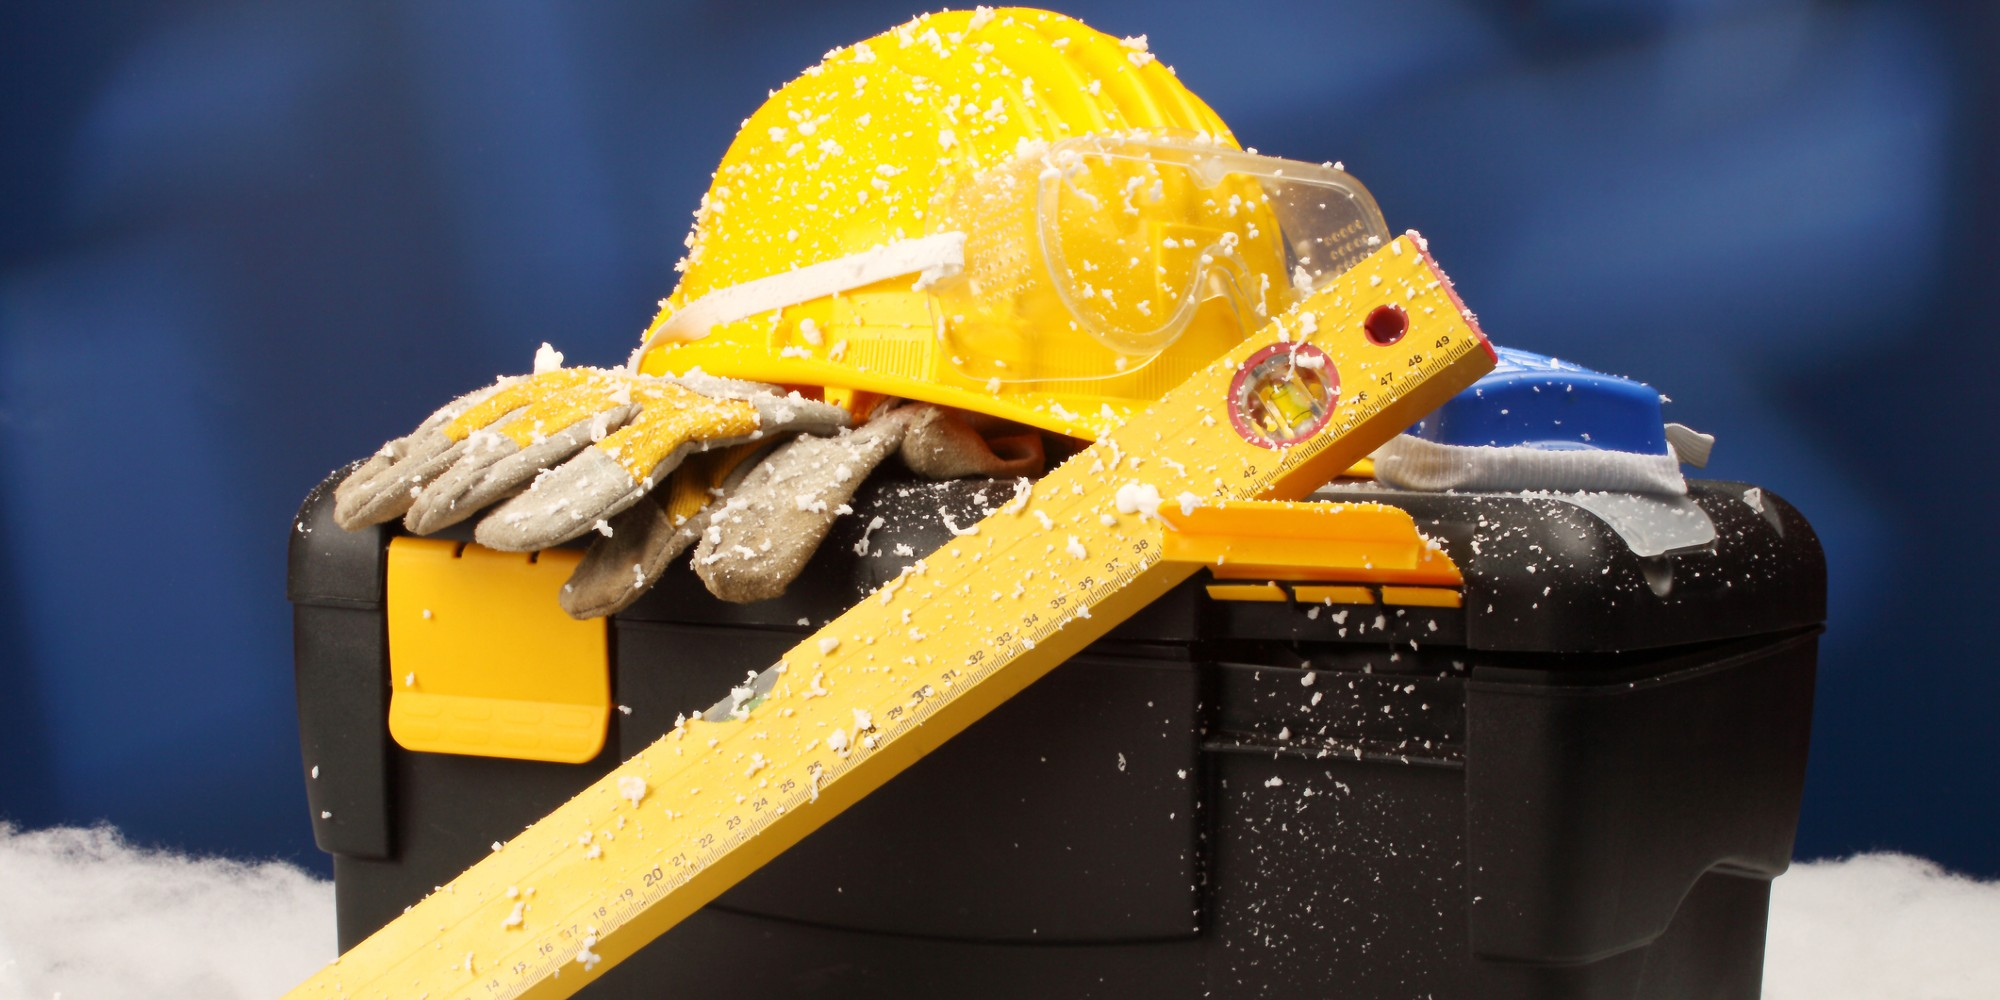 WOL PRO Blog - Winter Safety Job Site Tools